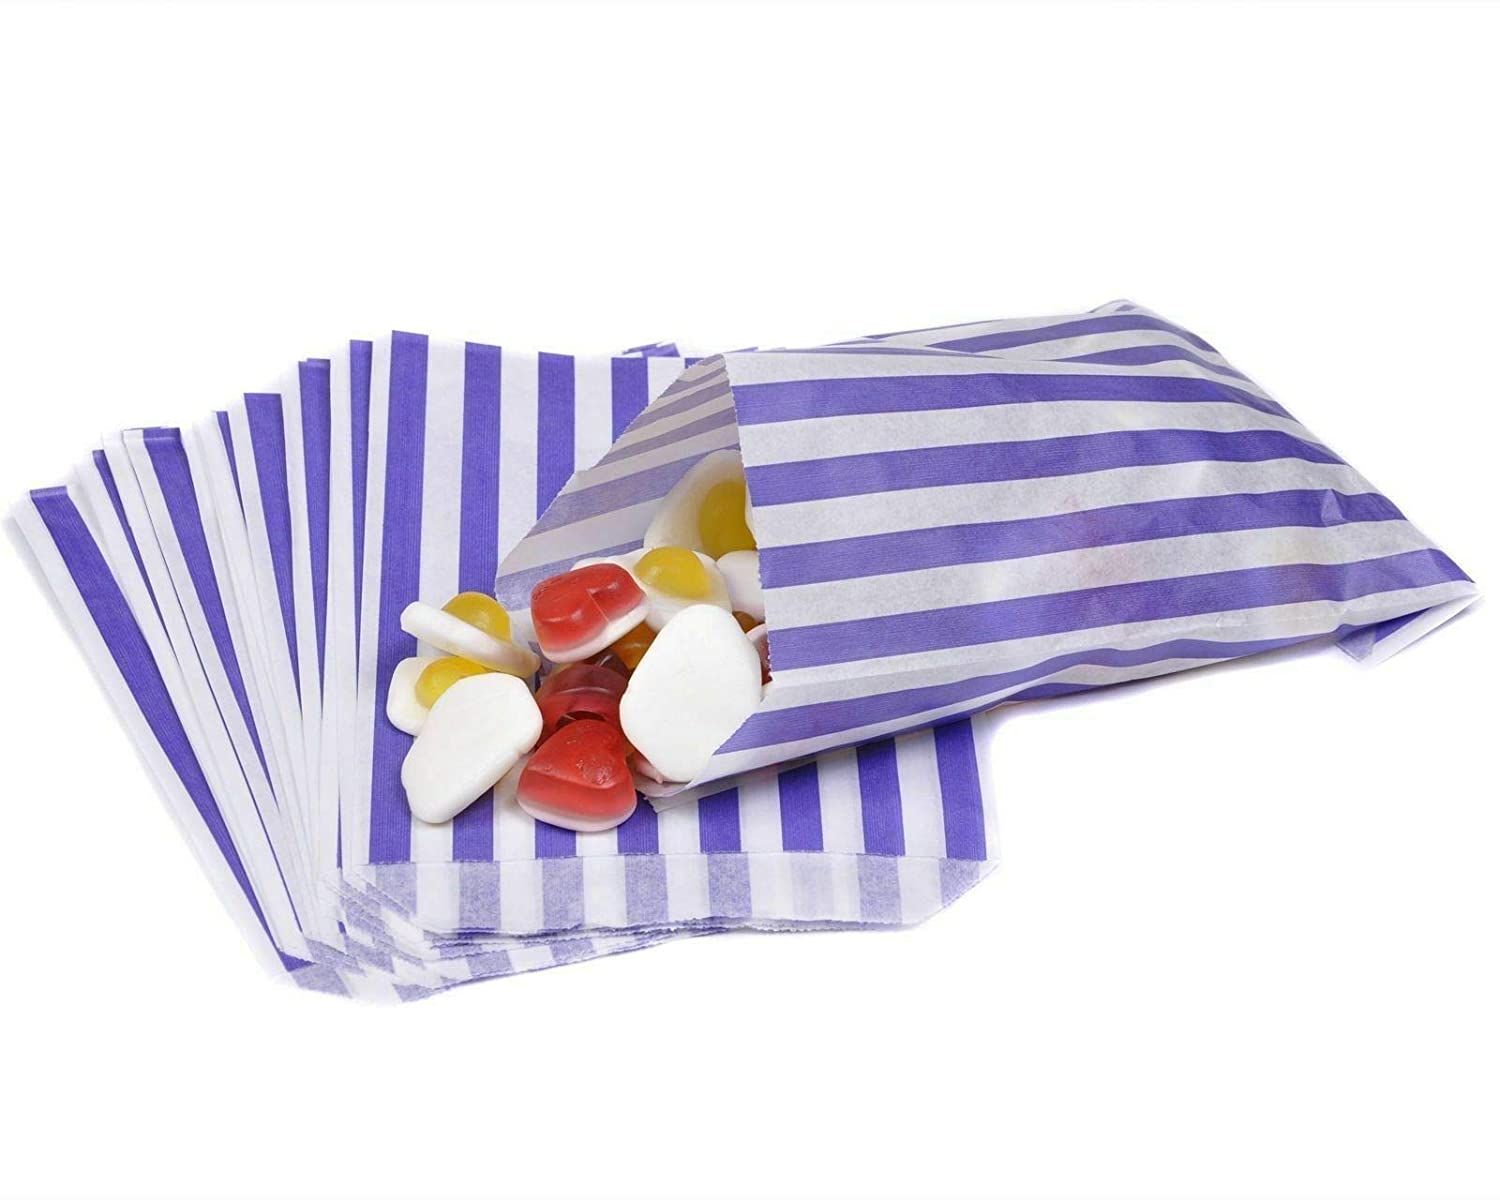 17.78 x 22.86cm 200x 300x 400x 500x | All Colours 7x9 CANDY STRIPE PAPER BAGS | 200x, Aqua